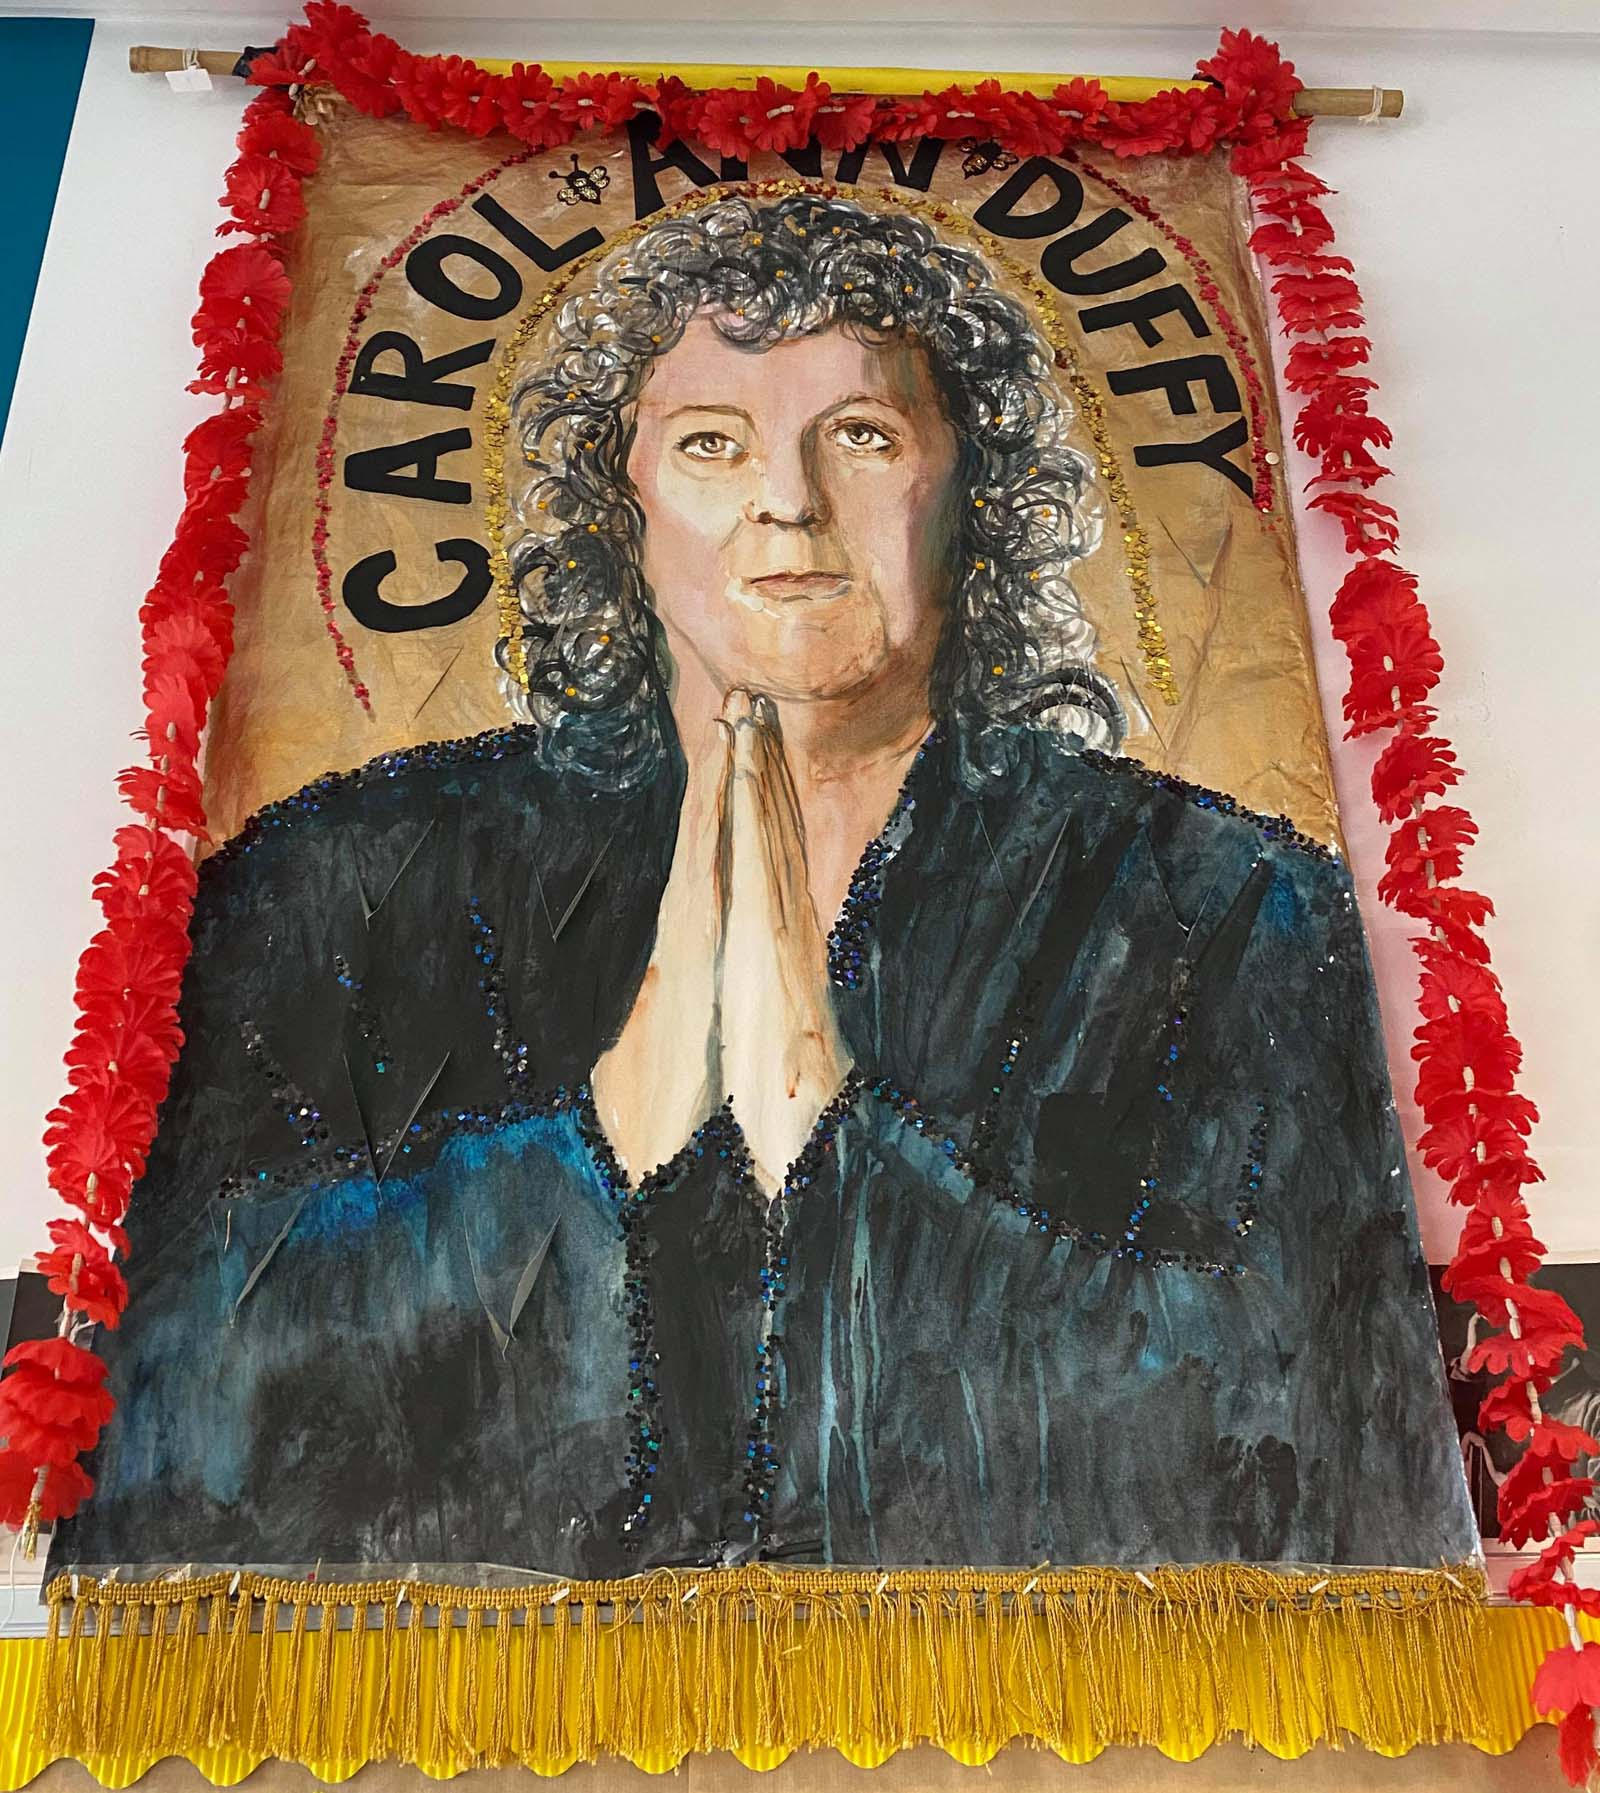 a banner with the central mage of a woman holding her hands as if in prayer